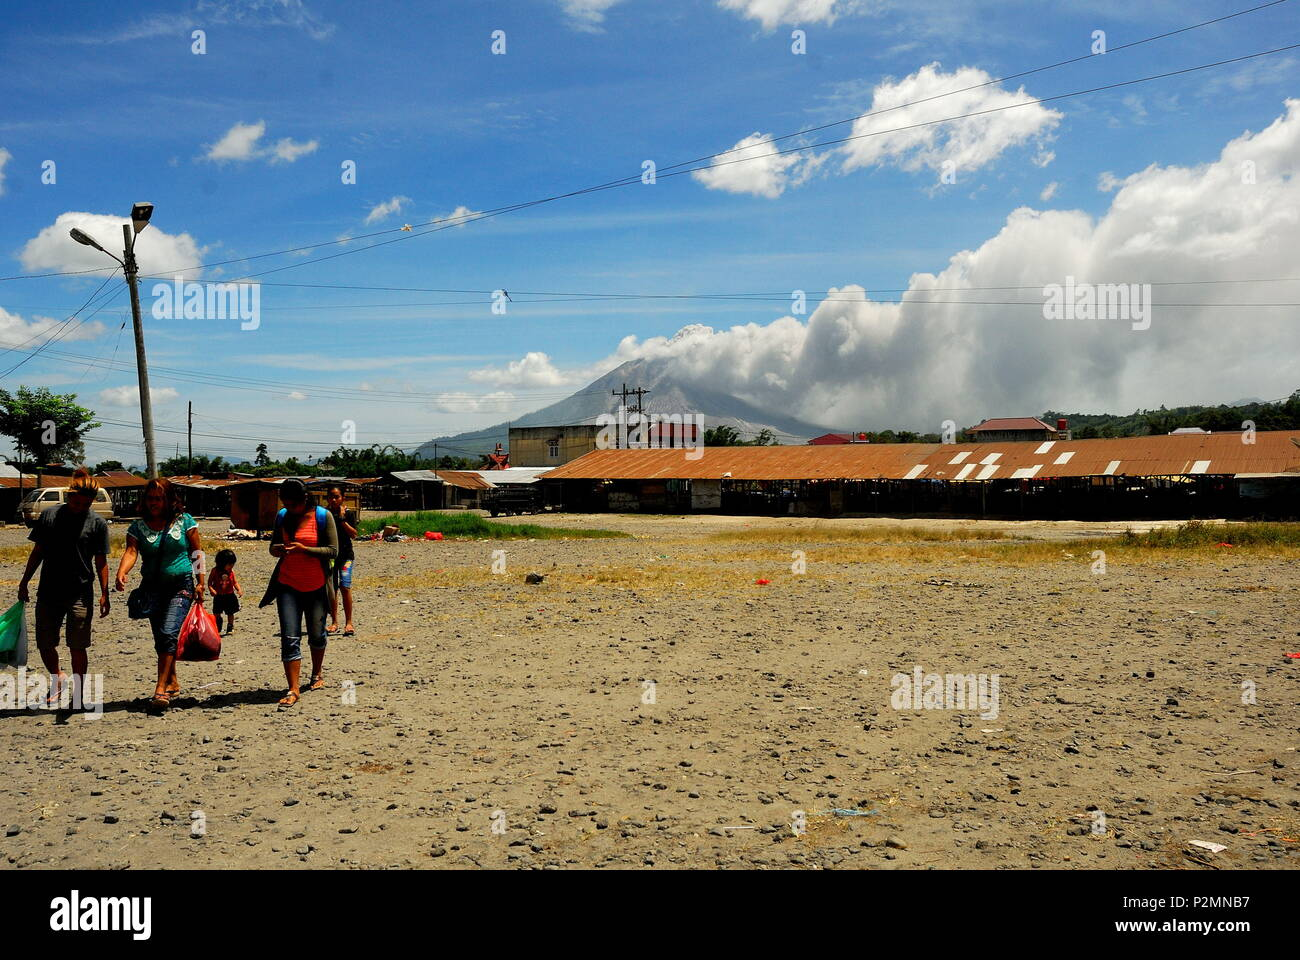 Indonesia. 15th June, 2018. The clear, blue sky was quickly turned grey with ash. In this shot, you can see the flows of dust and smoked sulfatara generated by the eruption. Seen fro kabanjahe city. Even with the relative size of the eruption, there is no chance this causes any climate impact. The initial estimates of sulfur released are too low to cause much atmosphere effects and the height of eruption wasn't tall enough to reach the stratosphere. Credit: Sabirin Manurung/Pacific Press/Alamy Live News - Stock Image